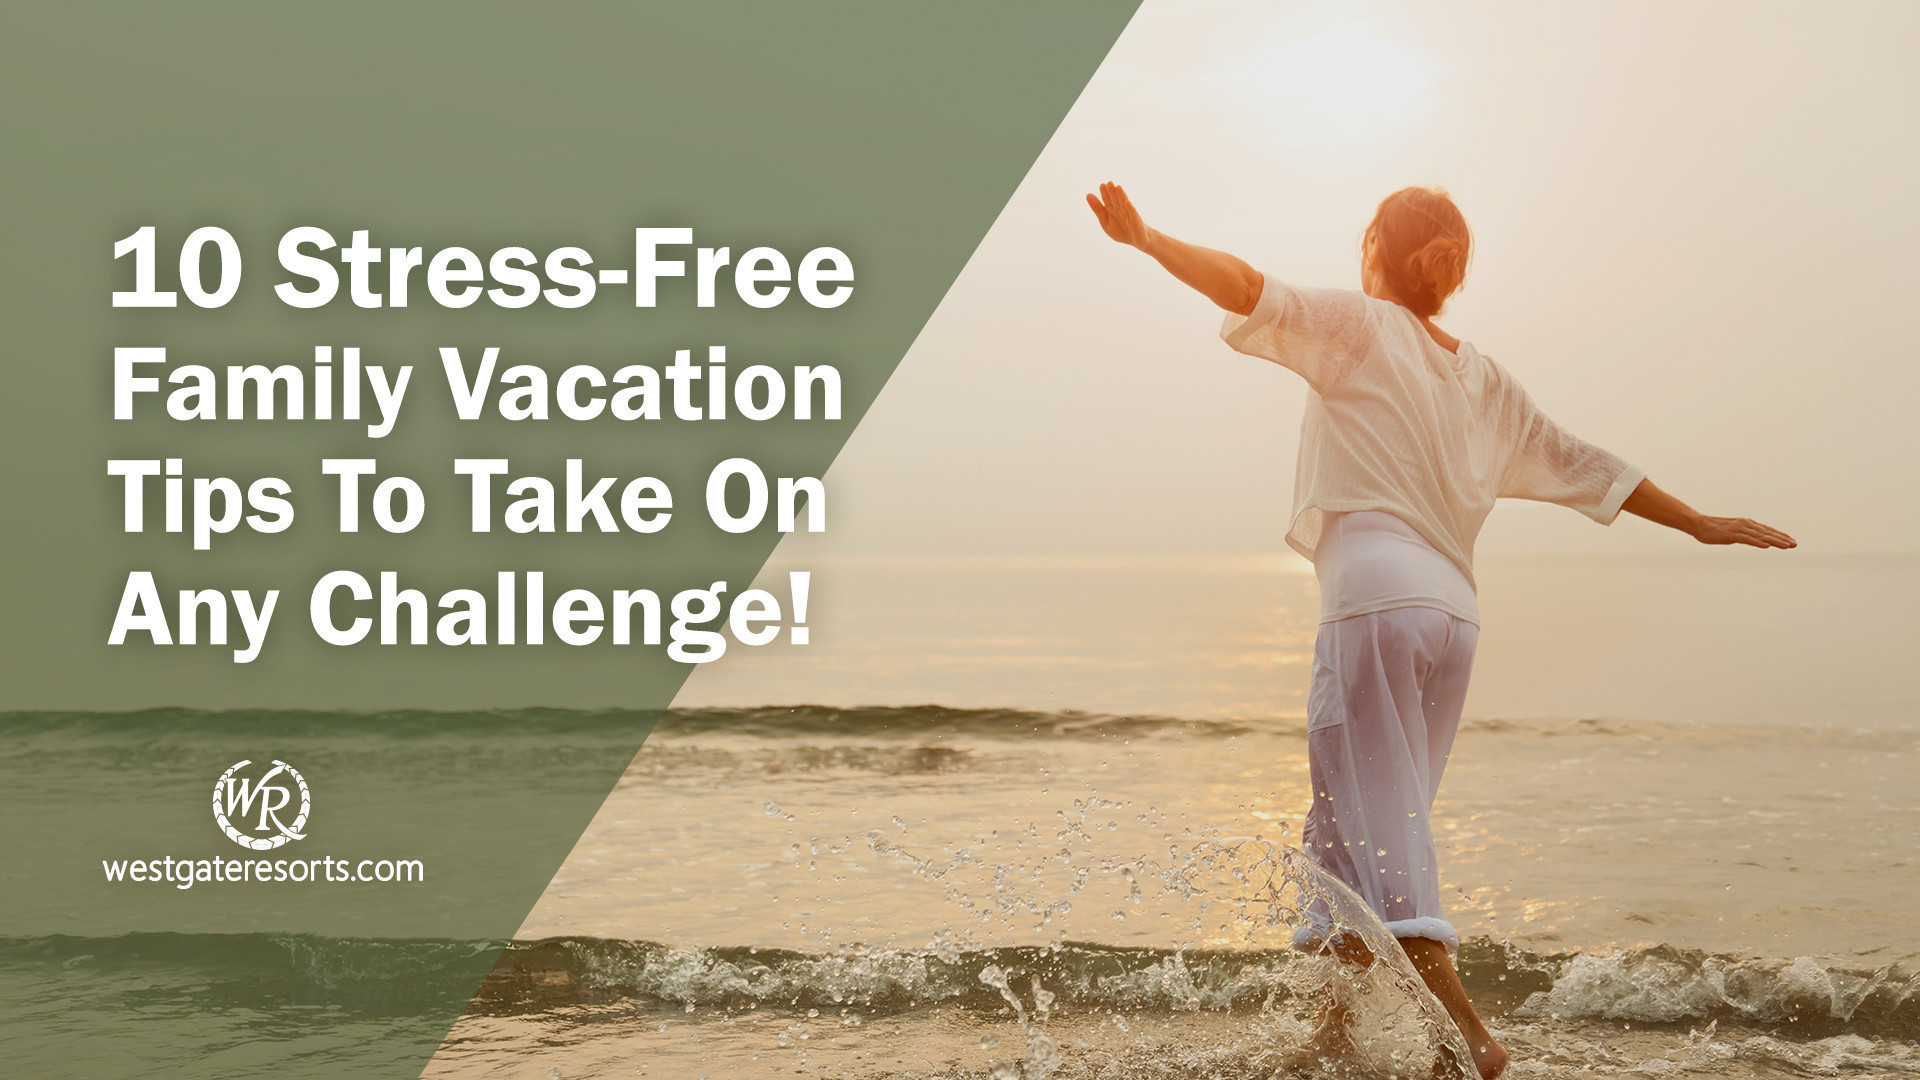 10 Stress-Free Family Vacation Tips To Take On Any Challenge! | Stress Free Family Vacations